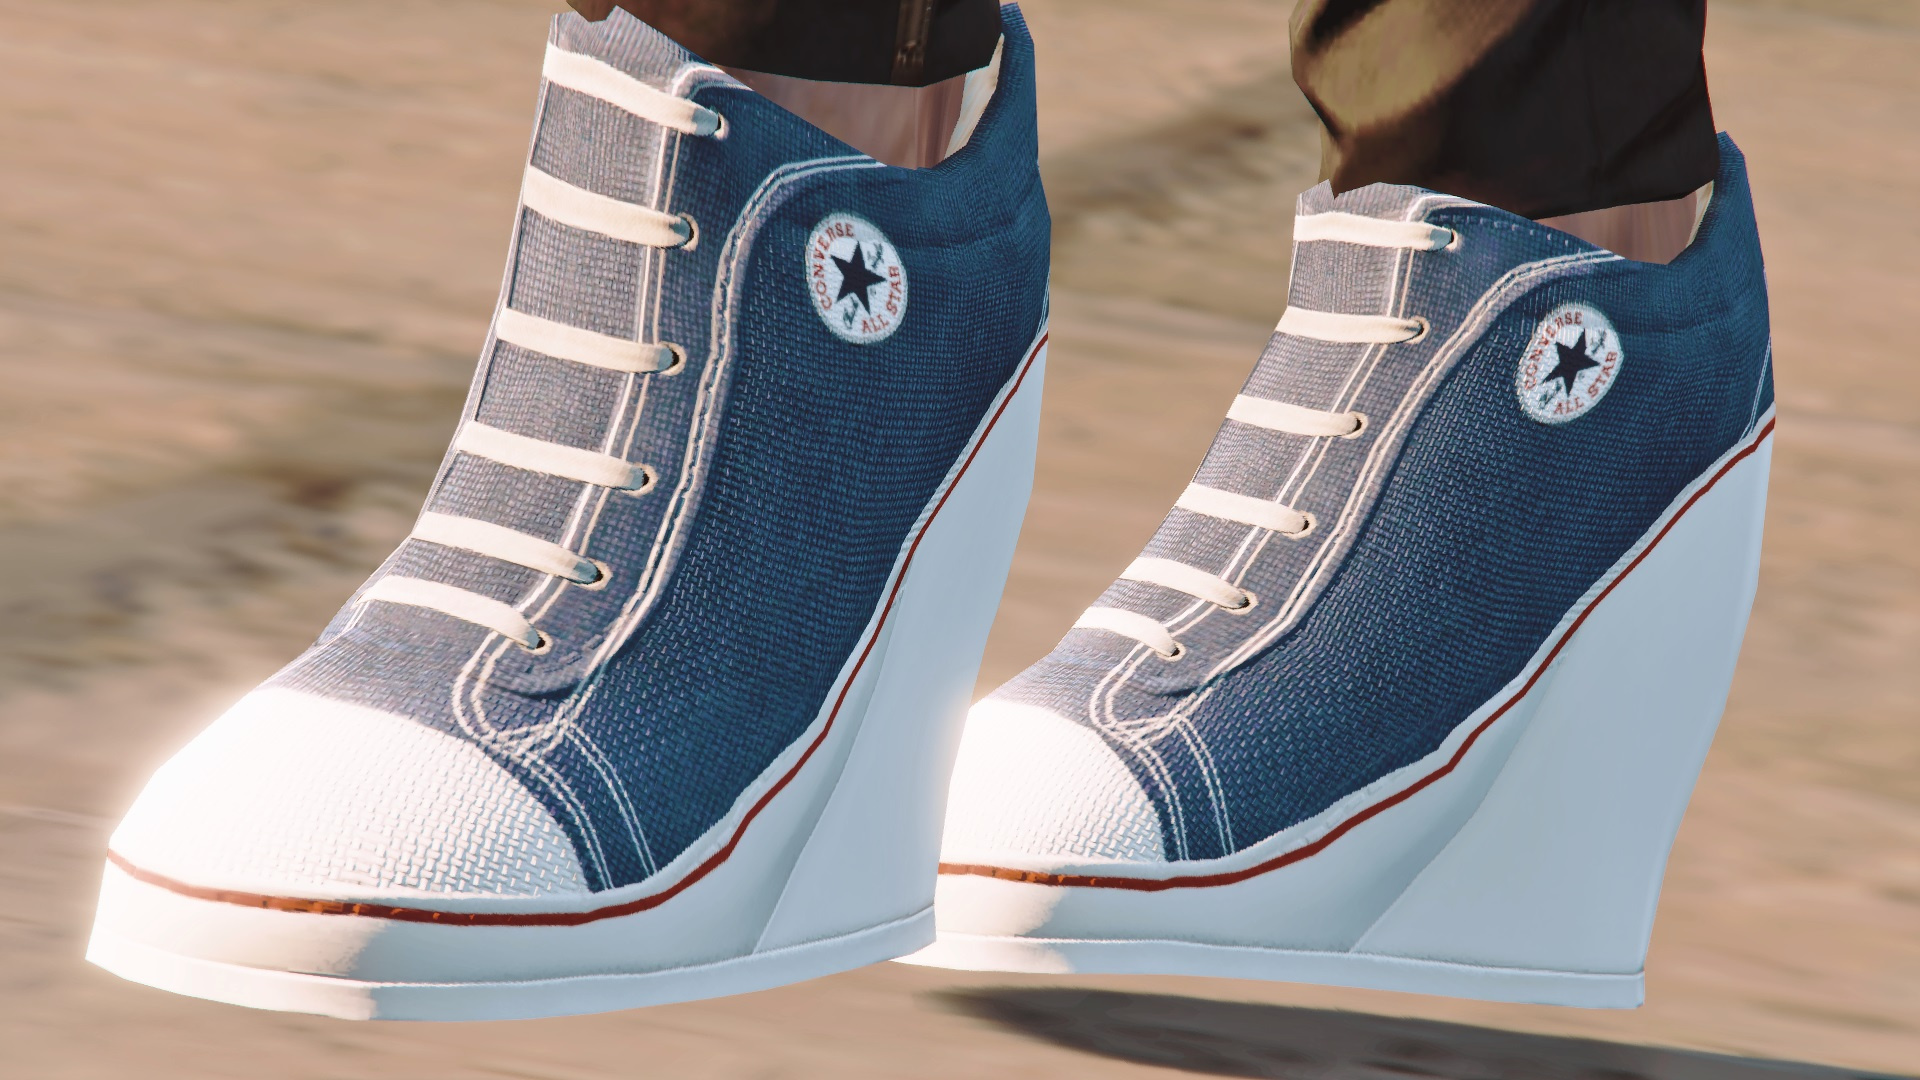 Converse high heels for MP Female